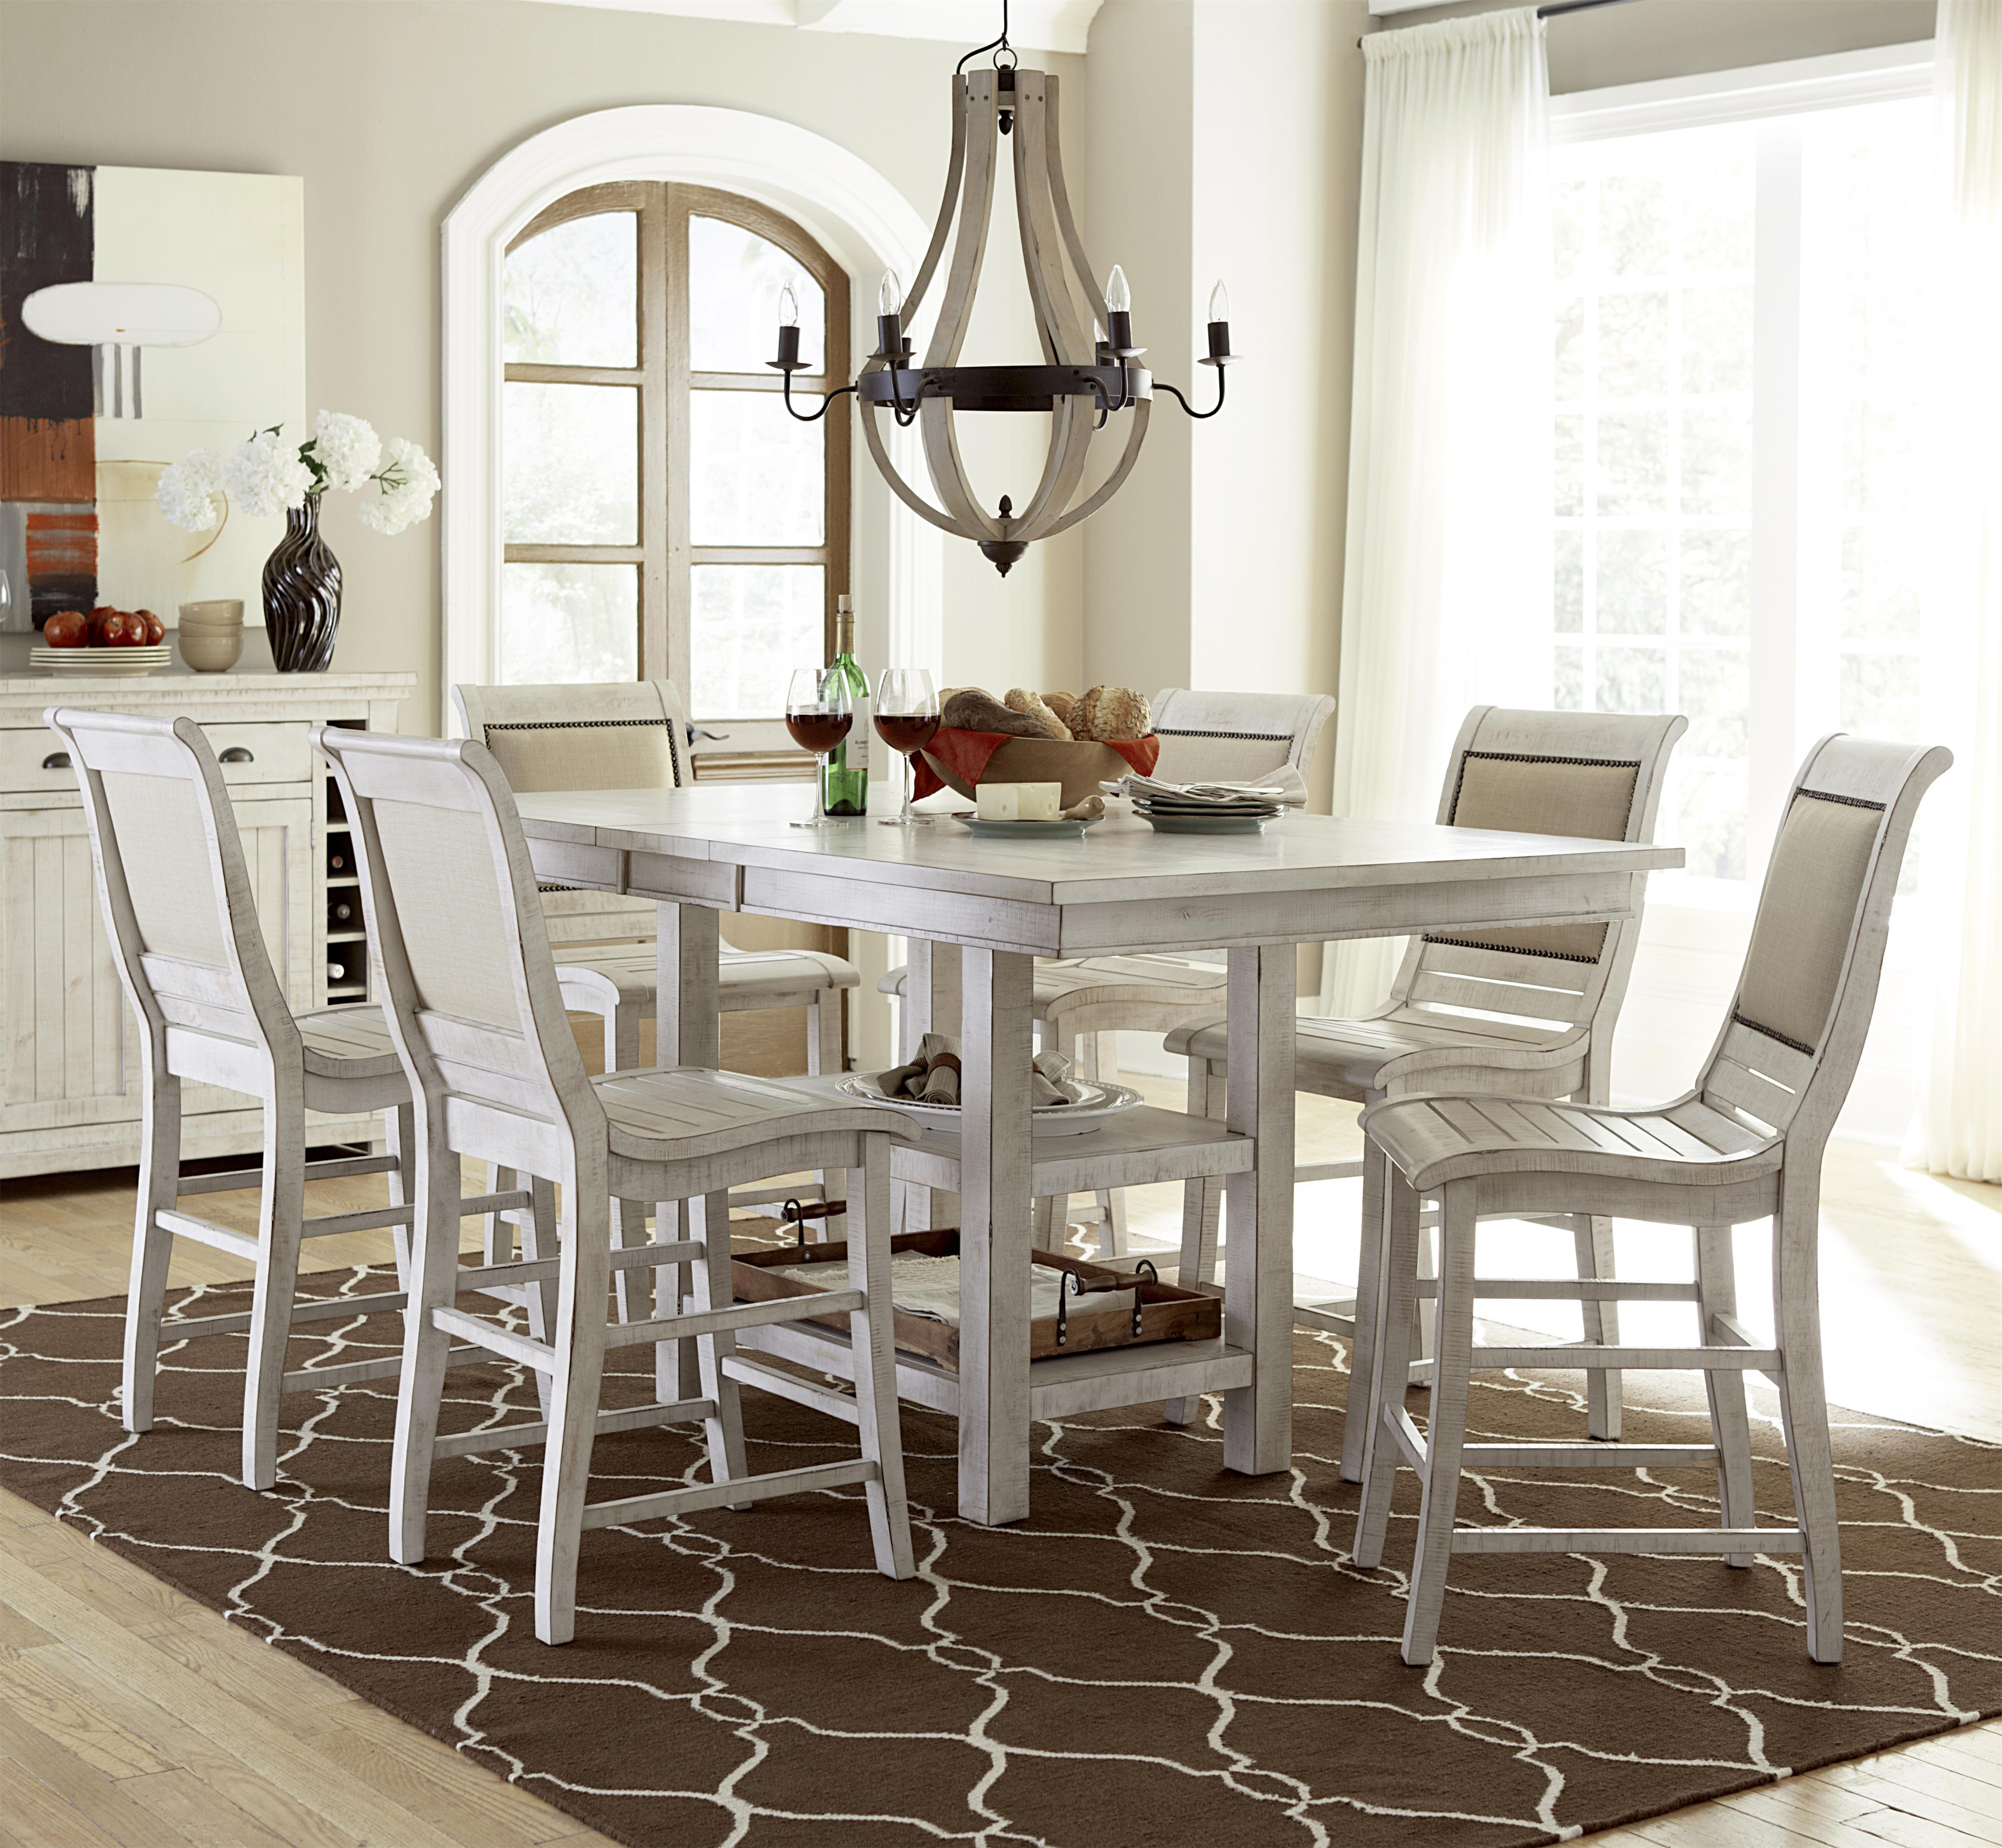 Countertop Table Sets Progressive Furniture Willow Dining 7 Piece Rectangular